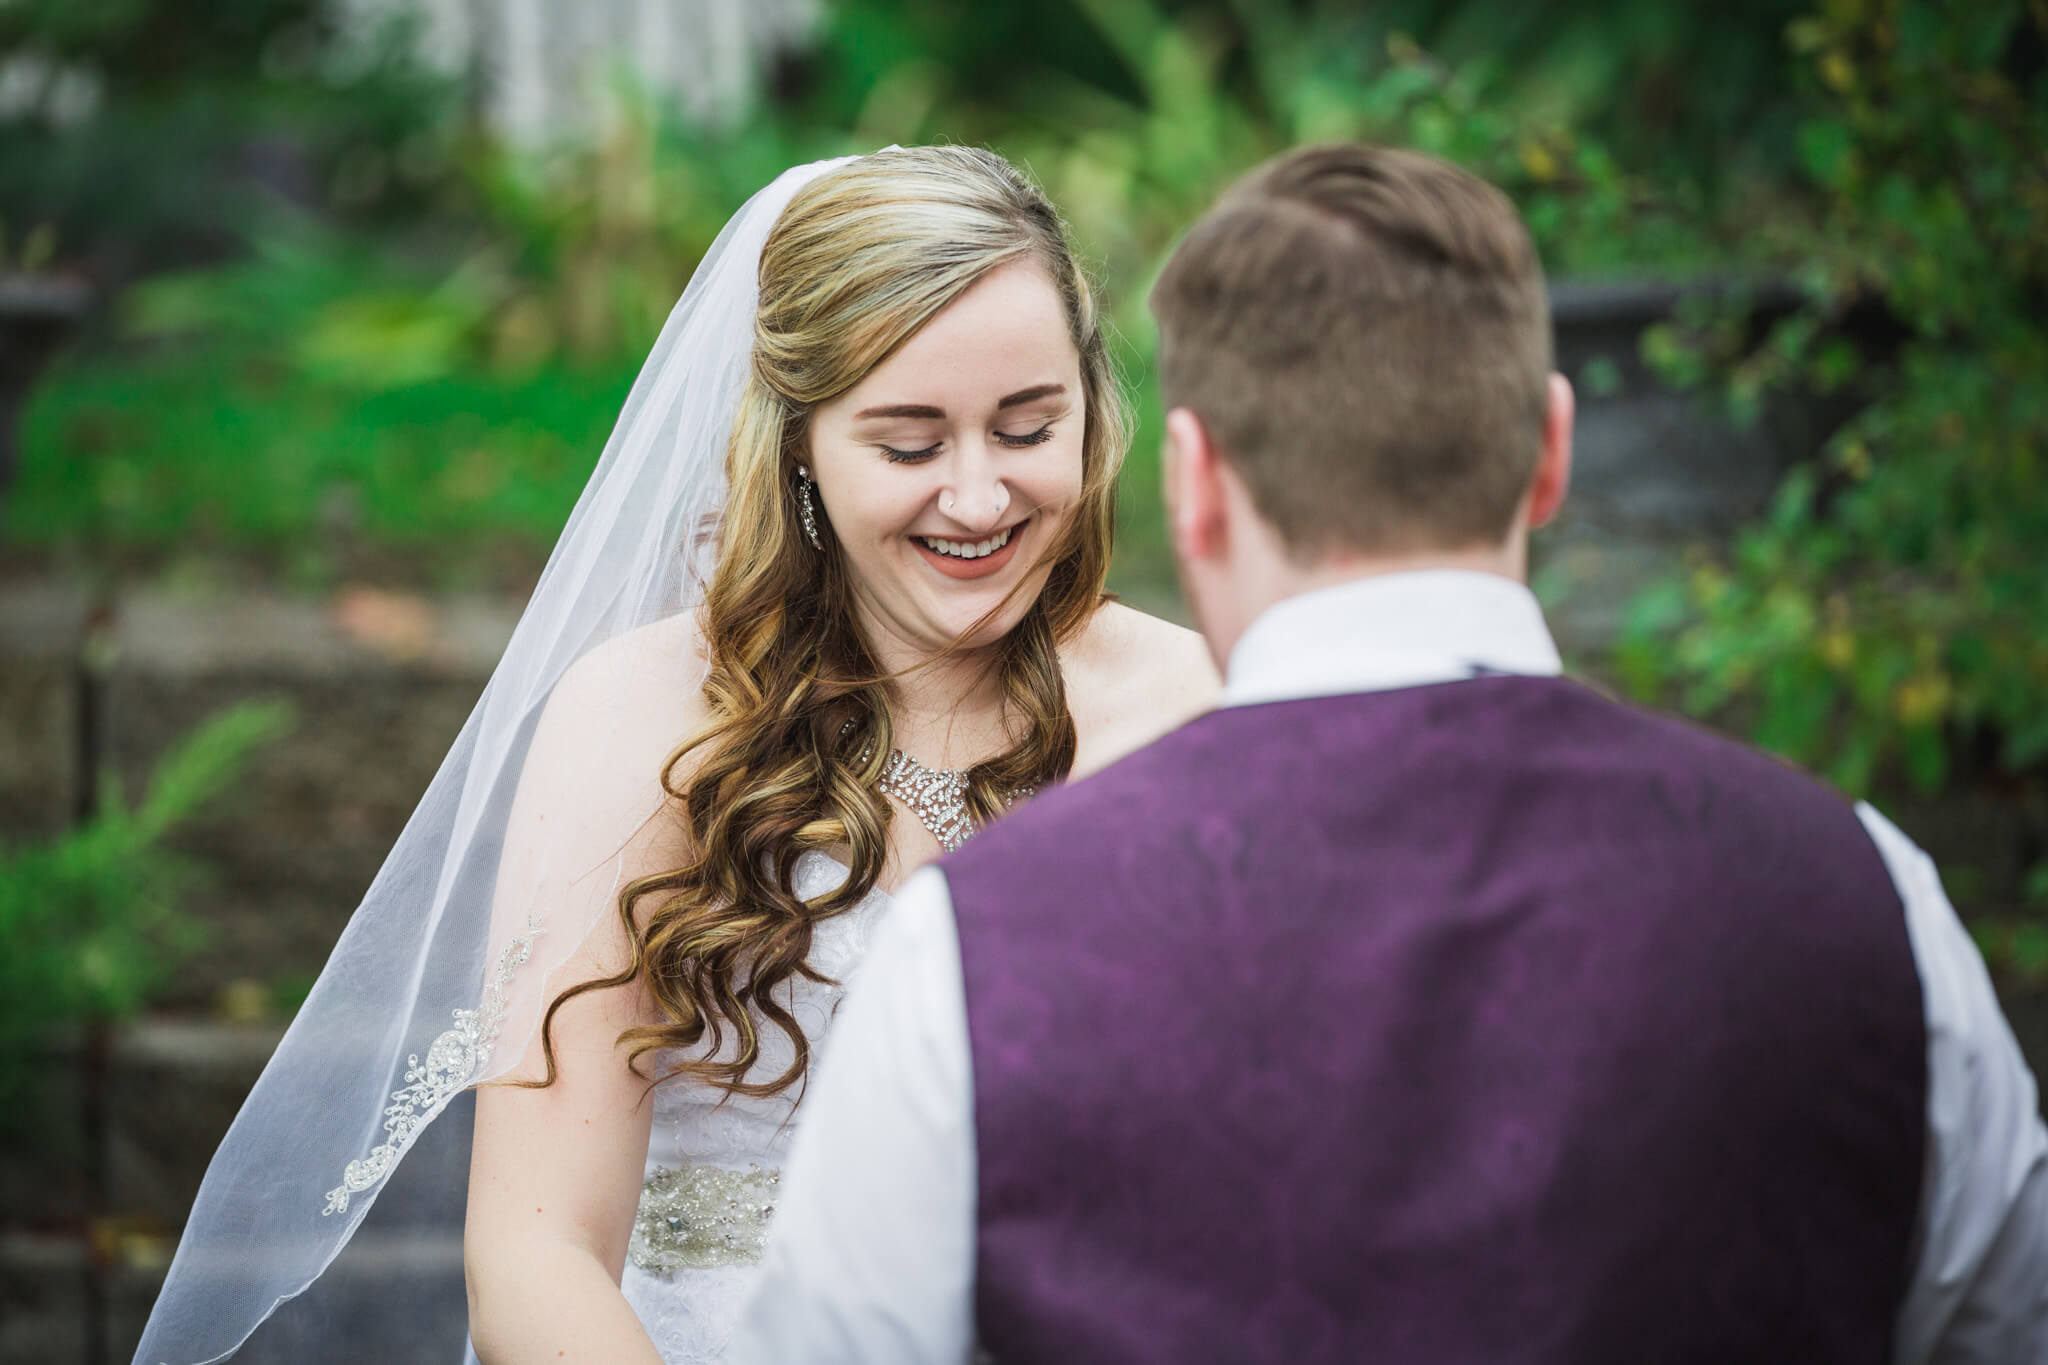 Mitcham's Barn Wedding-16.JPG